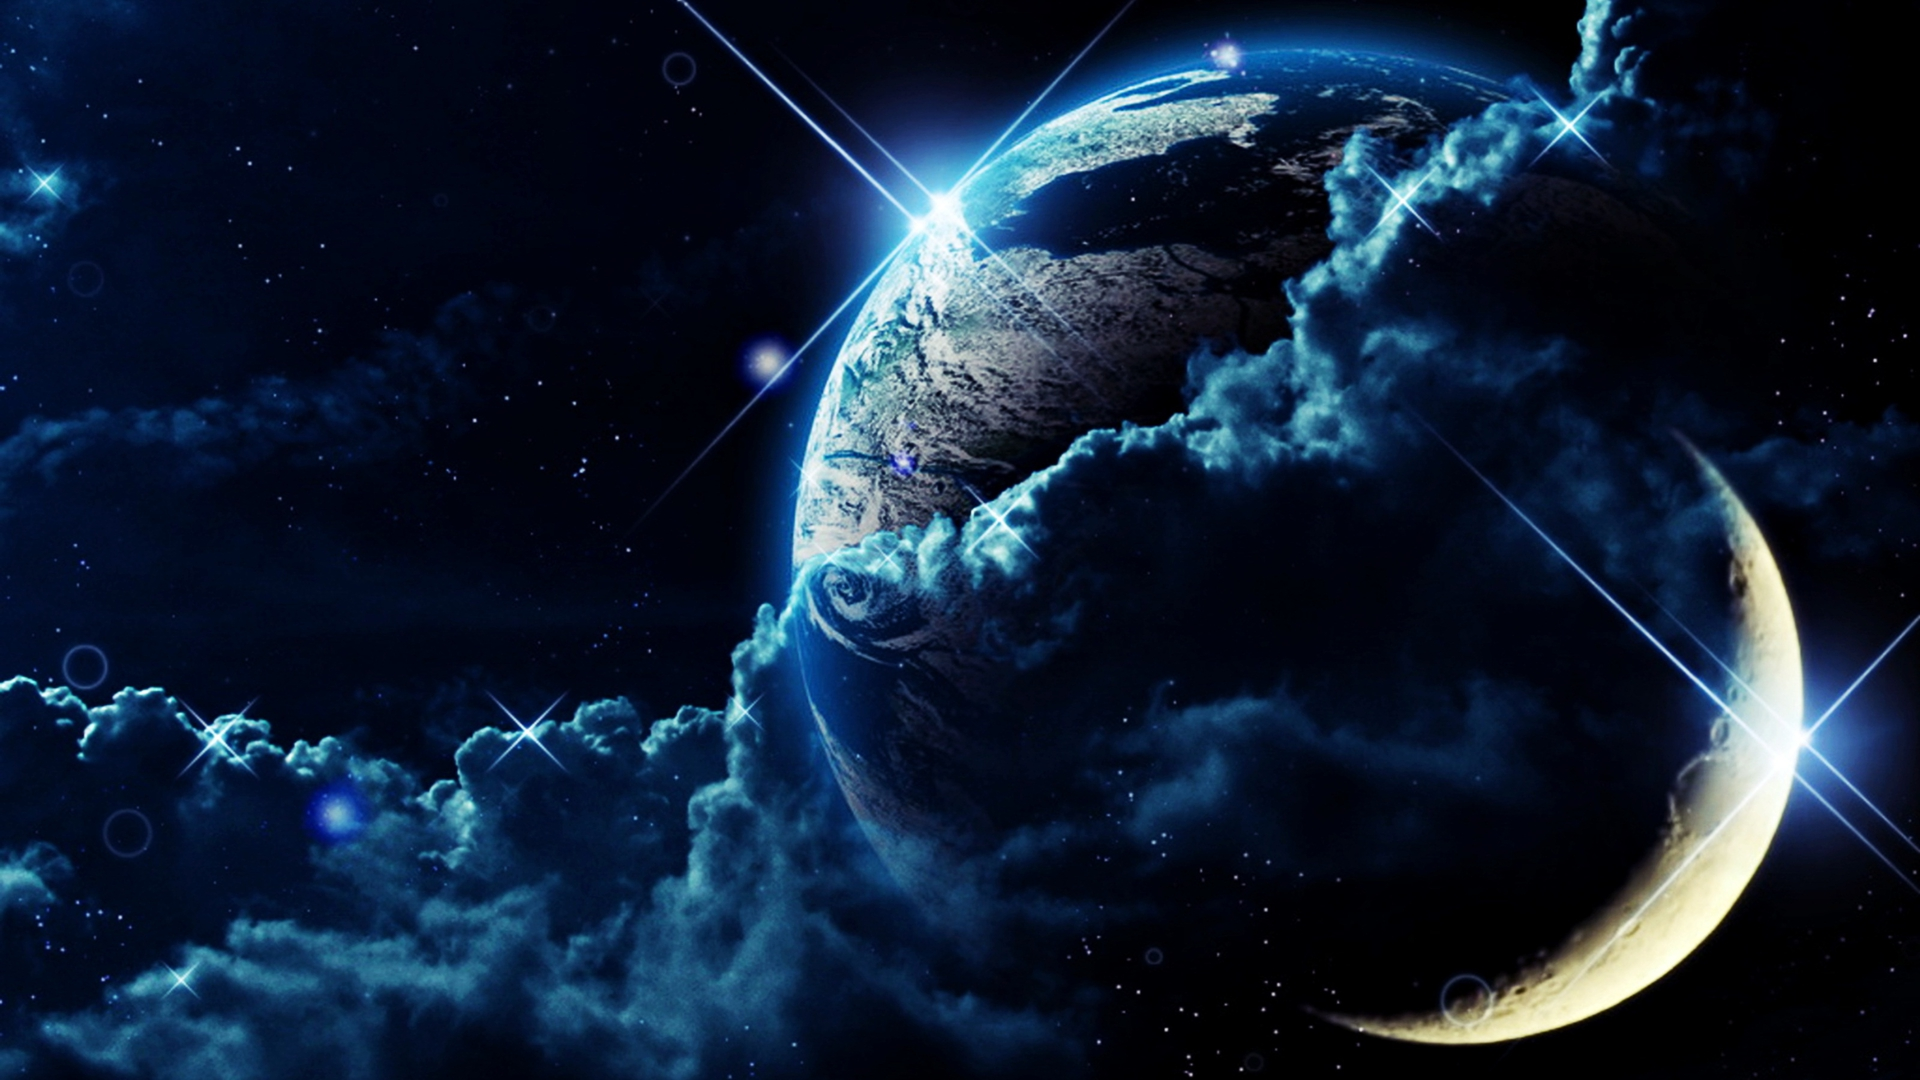 Cool Earth Wallpaper Posted By Samantha Johnson